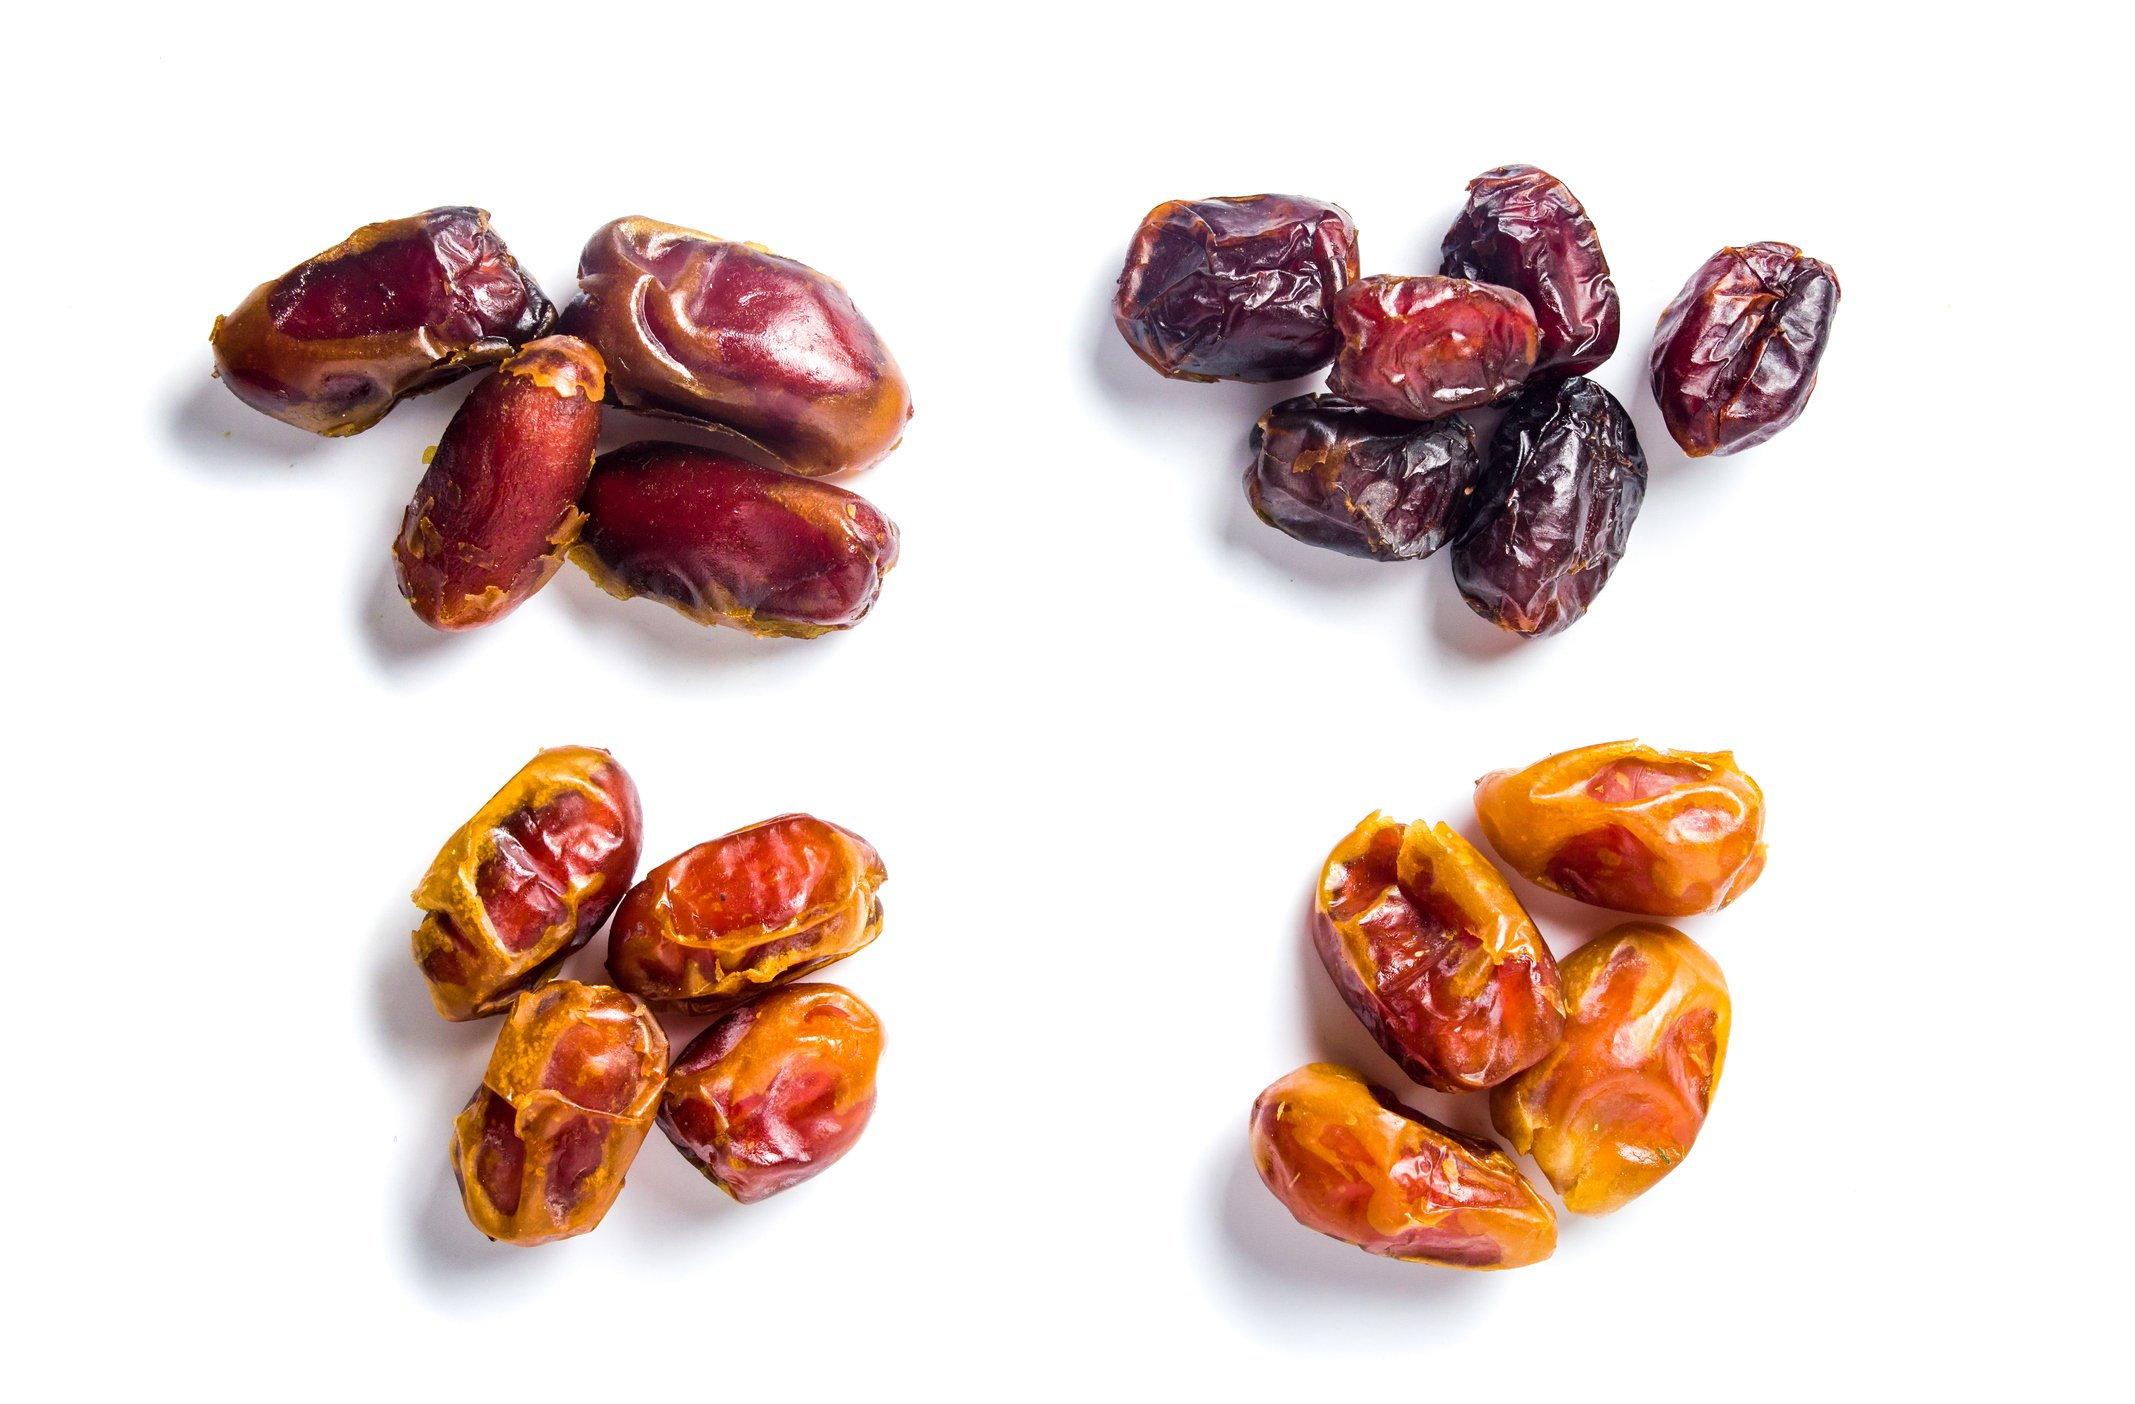 There are more than 200 date varieties around the world. (iStock Photo)